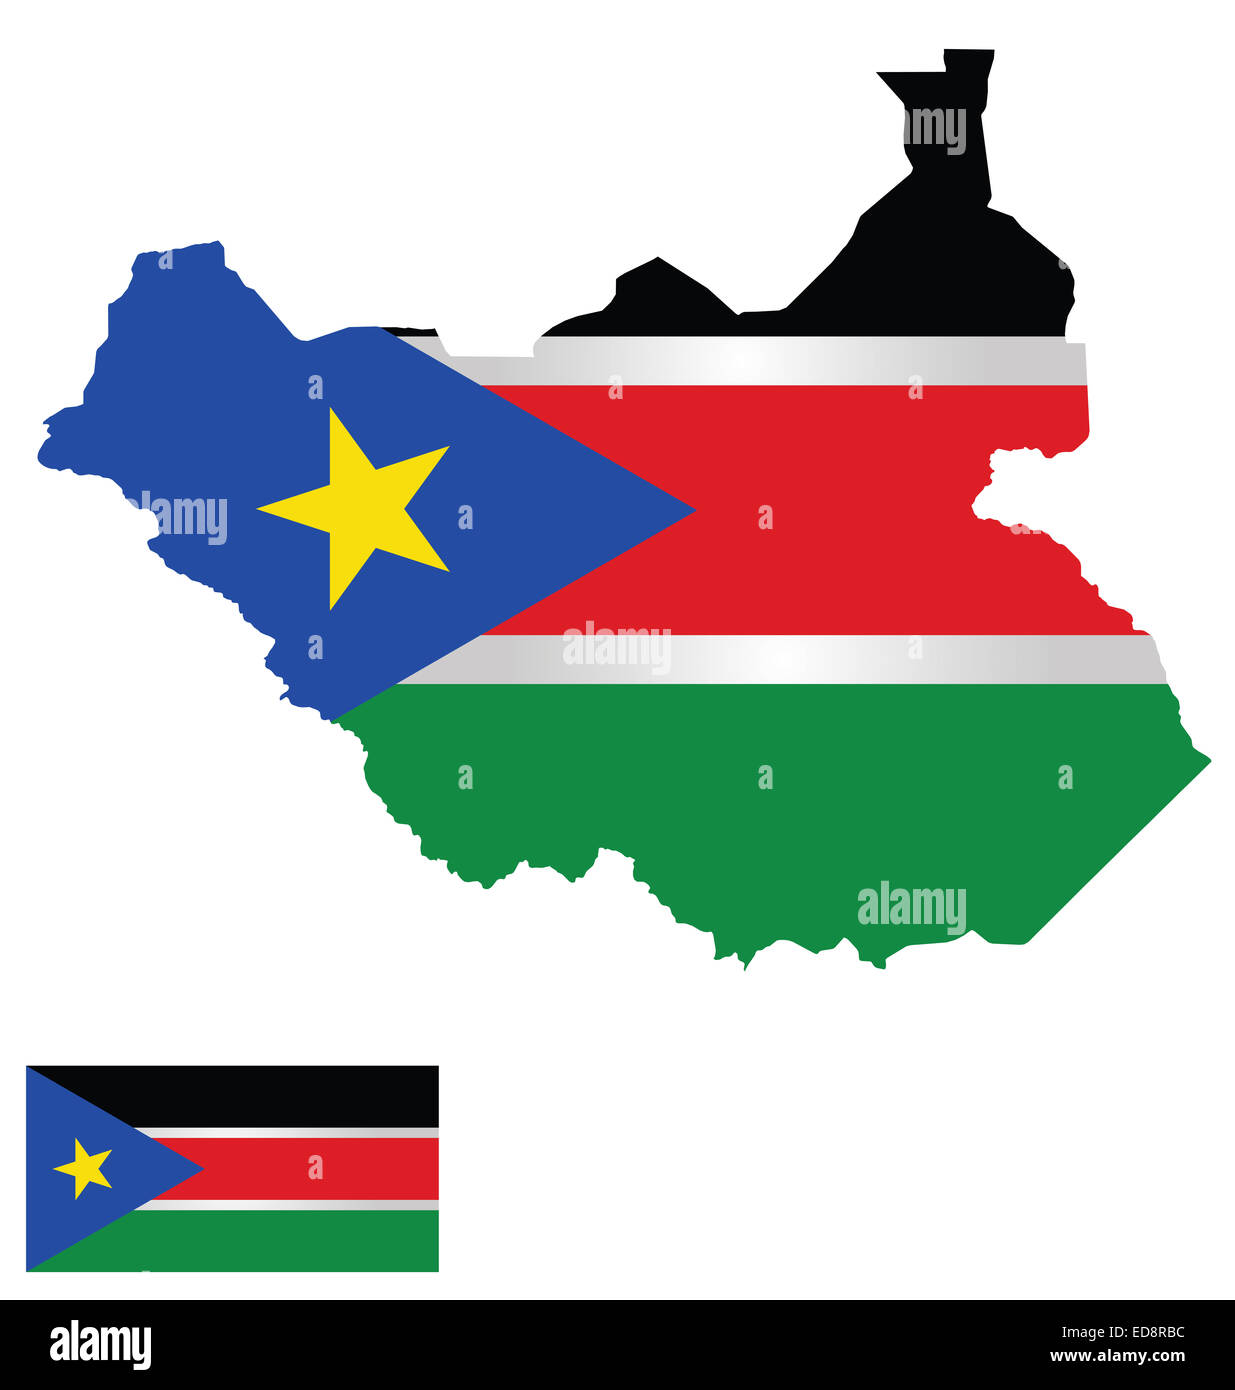 Flag And Coat Of Arms Of The Republic Of South Sudan Overlaid On - Republic of the sudan map